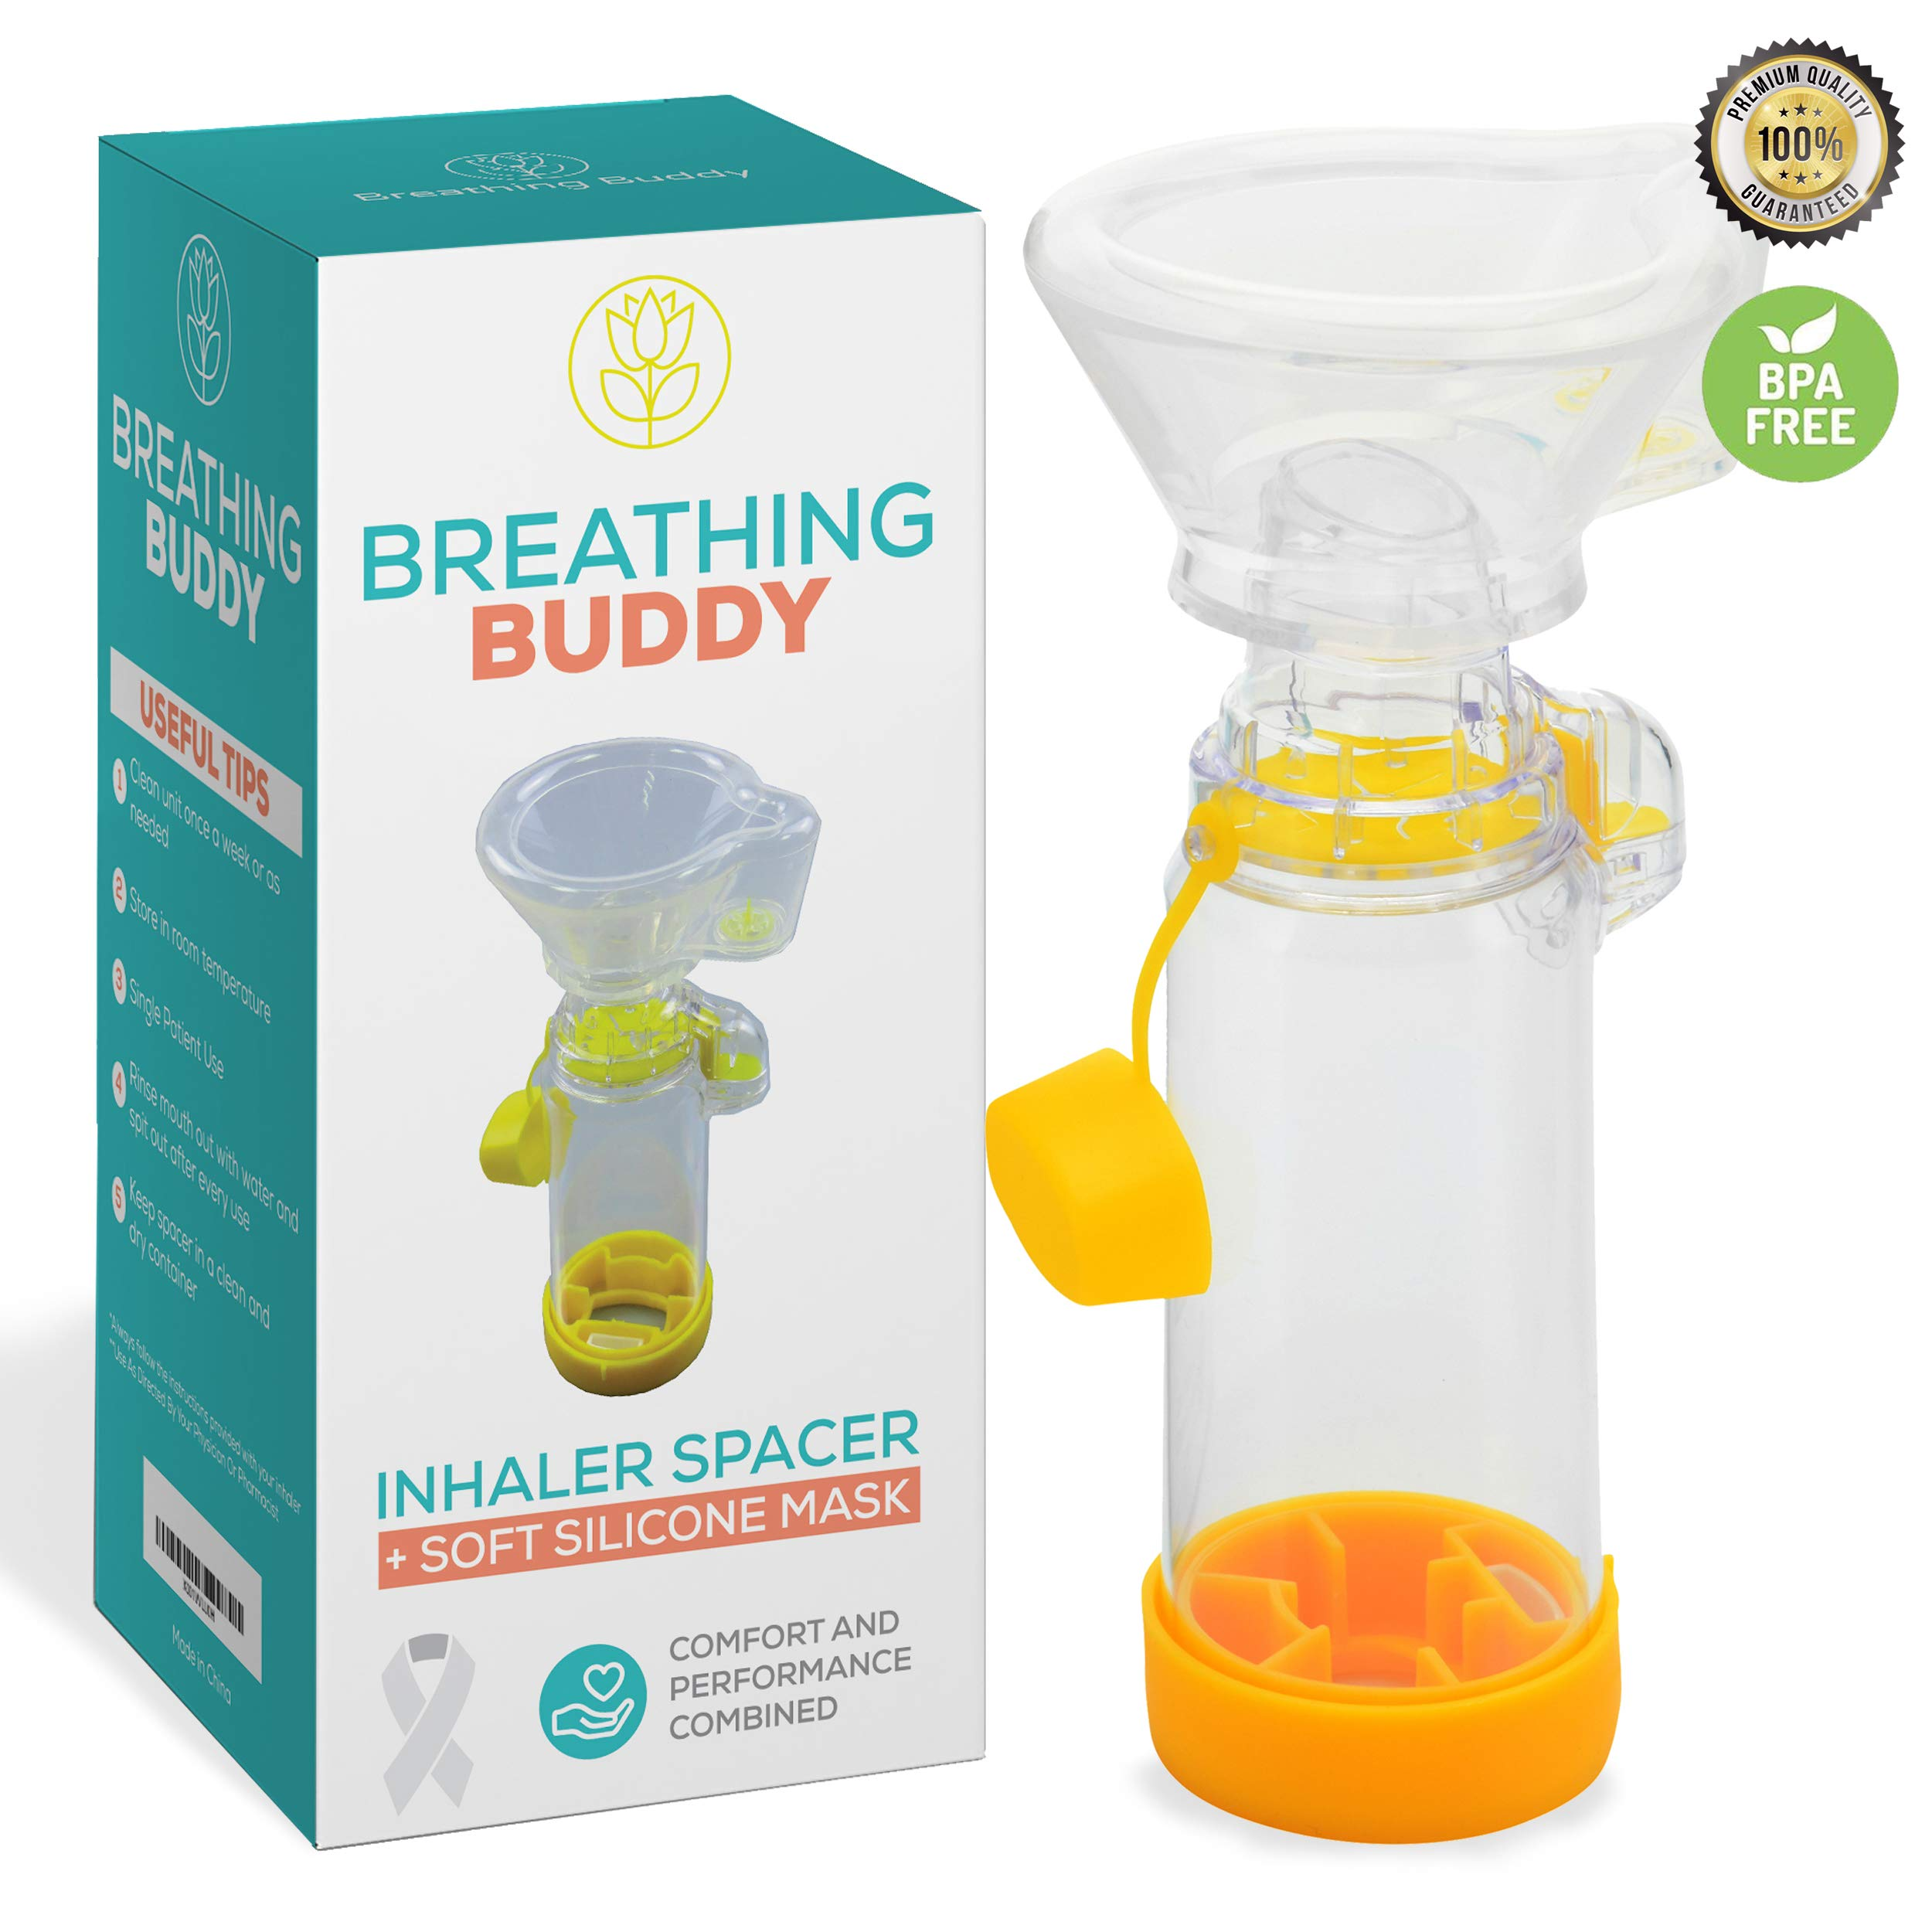 Spacer for Children- Includes Mask I Fits All Sizes I BPA-Free, Non-Toxic I Upgraded Version w/Visual Air Flow Indicator & Flow Whistle | Compact & Lightweight I Kids Medium/Adult Small by Breathing Buddy